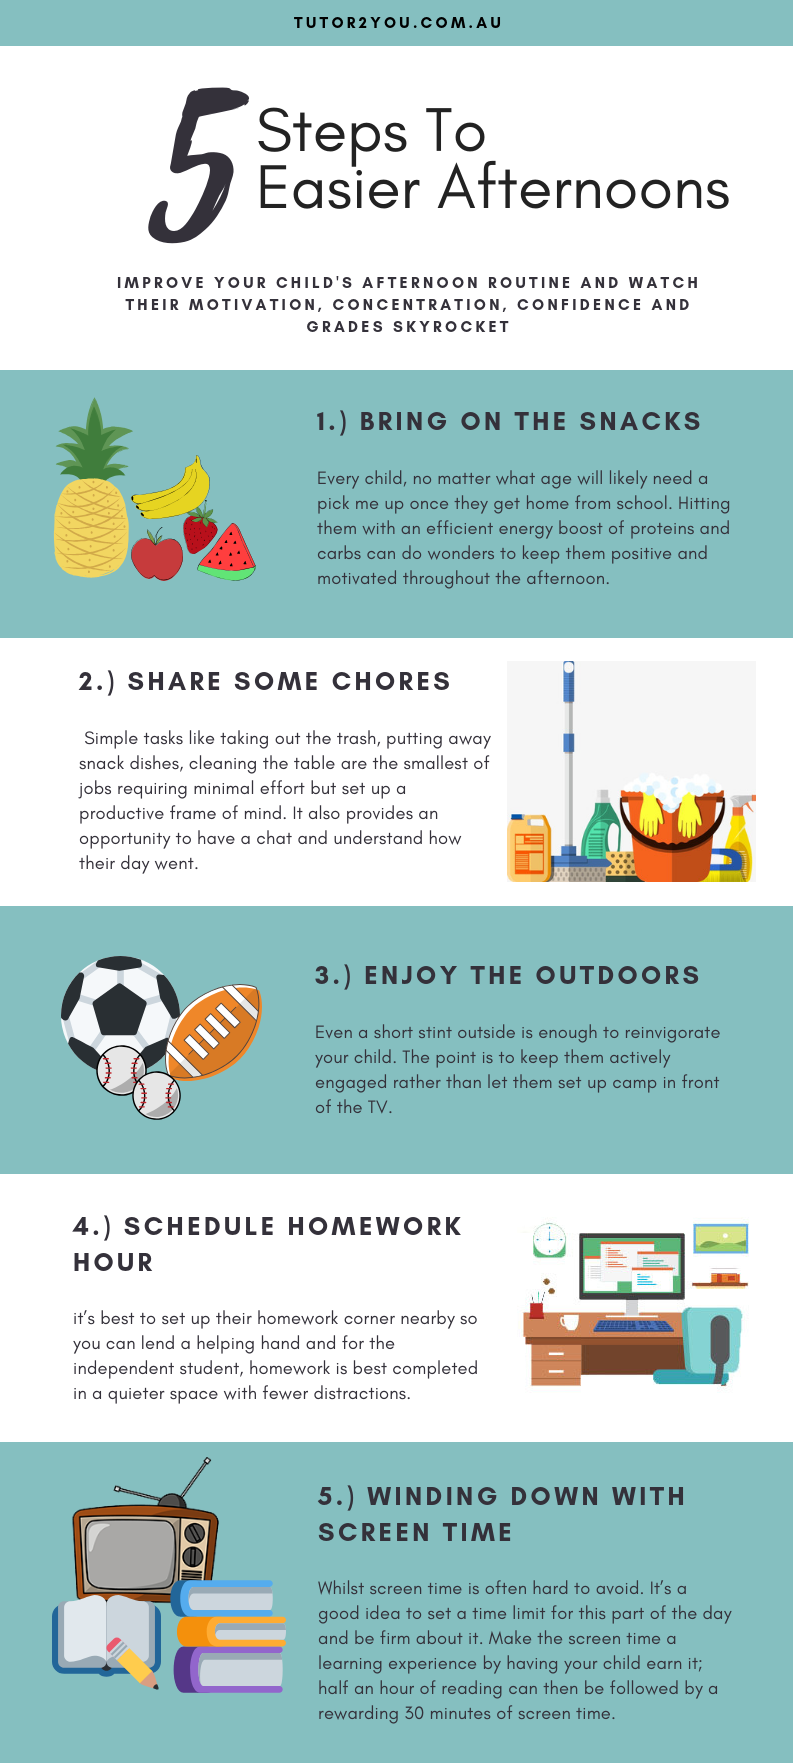 5 steps to easier afternoons - infographic guide | Tutor2you